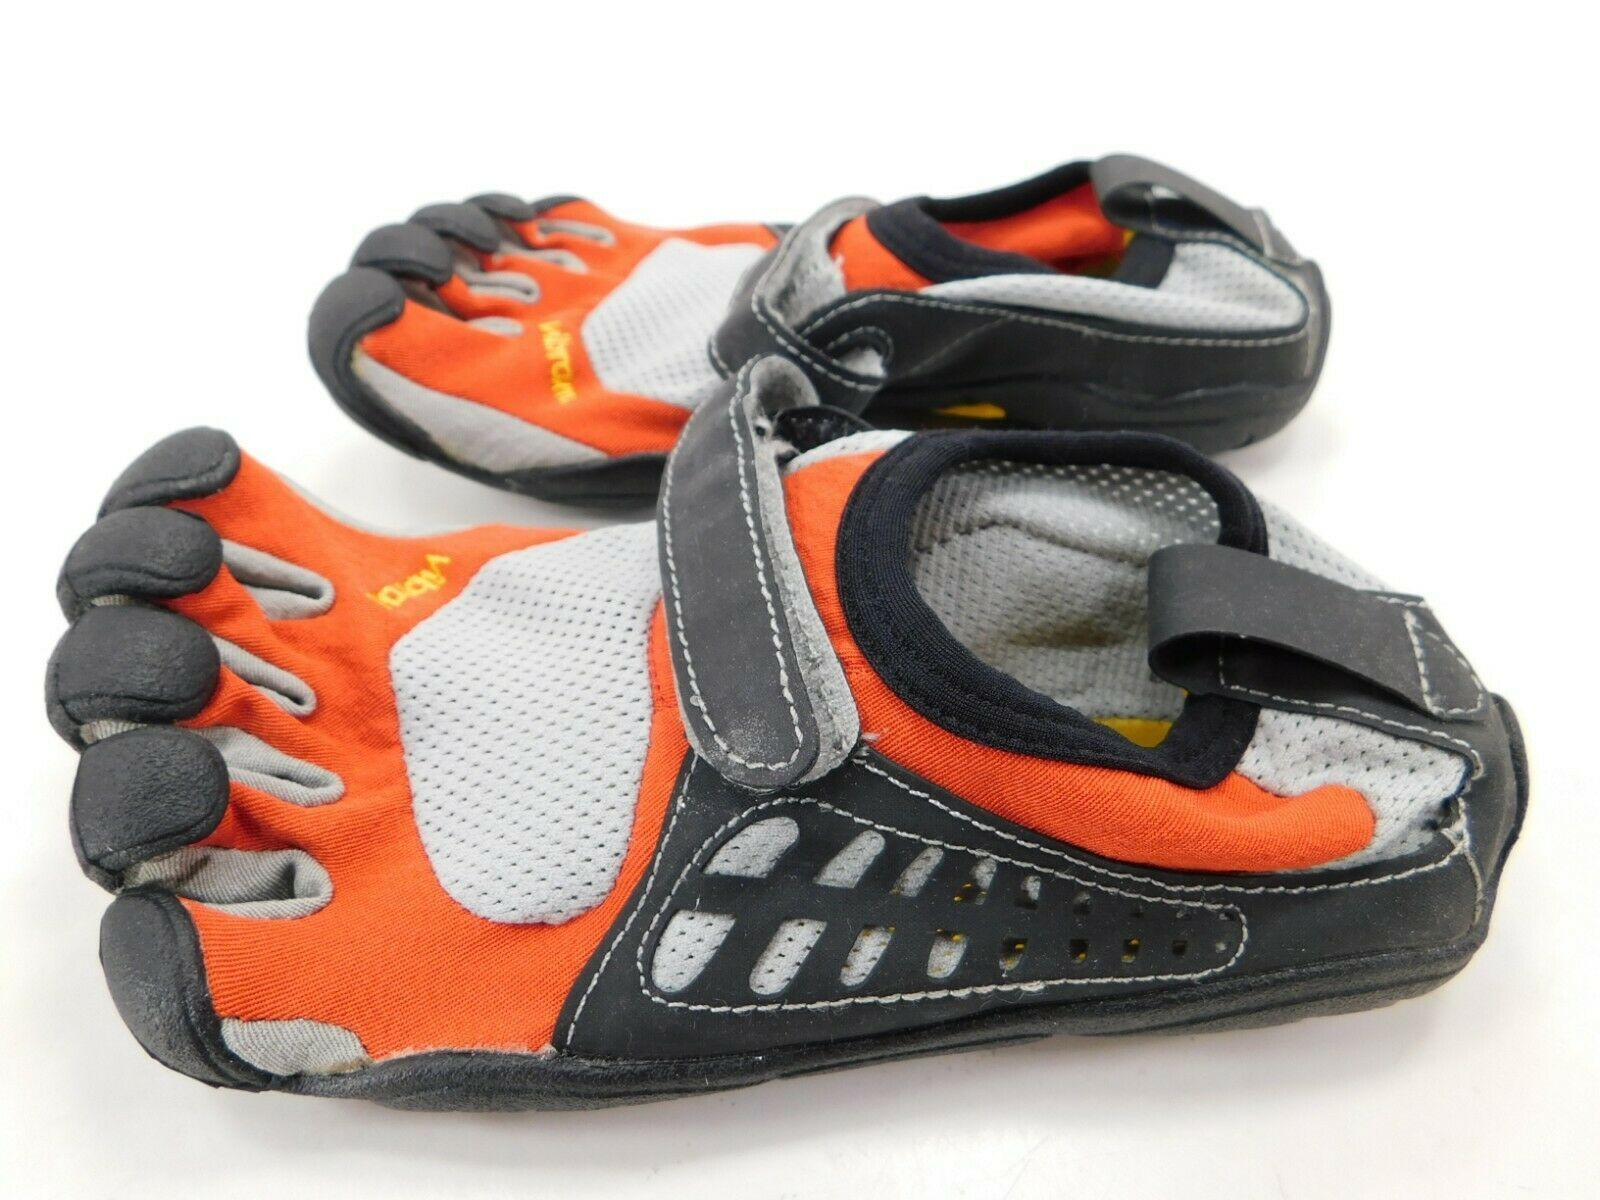 Vibram FiveFingers KSO Size 33 (US 2Y-2.5Y) Youth Kid's Boy's Running Shoes B173